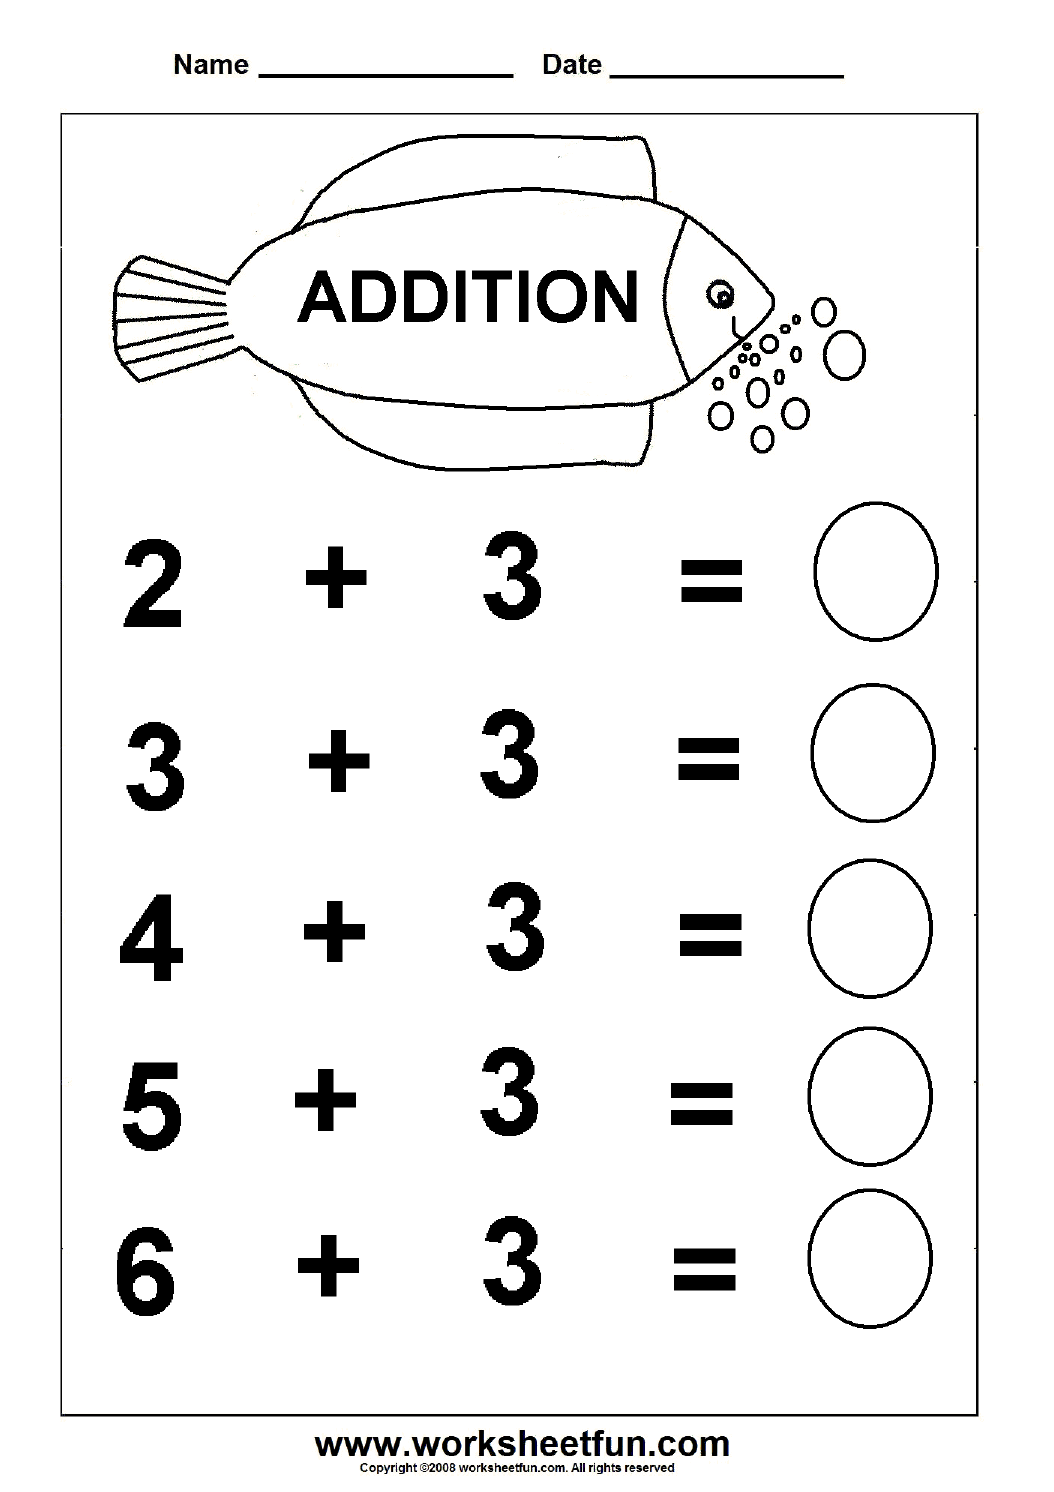 Addition Basic Addition Facts FREE Printable Worksheets – Addition Free Worksheets